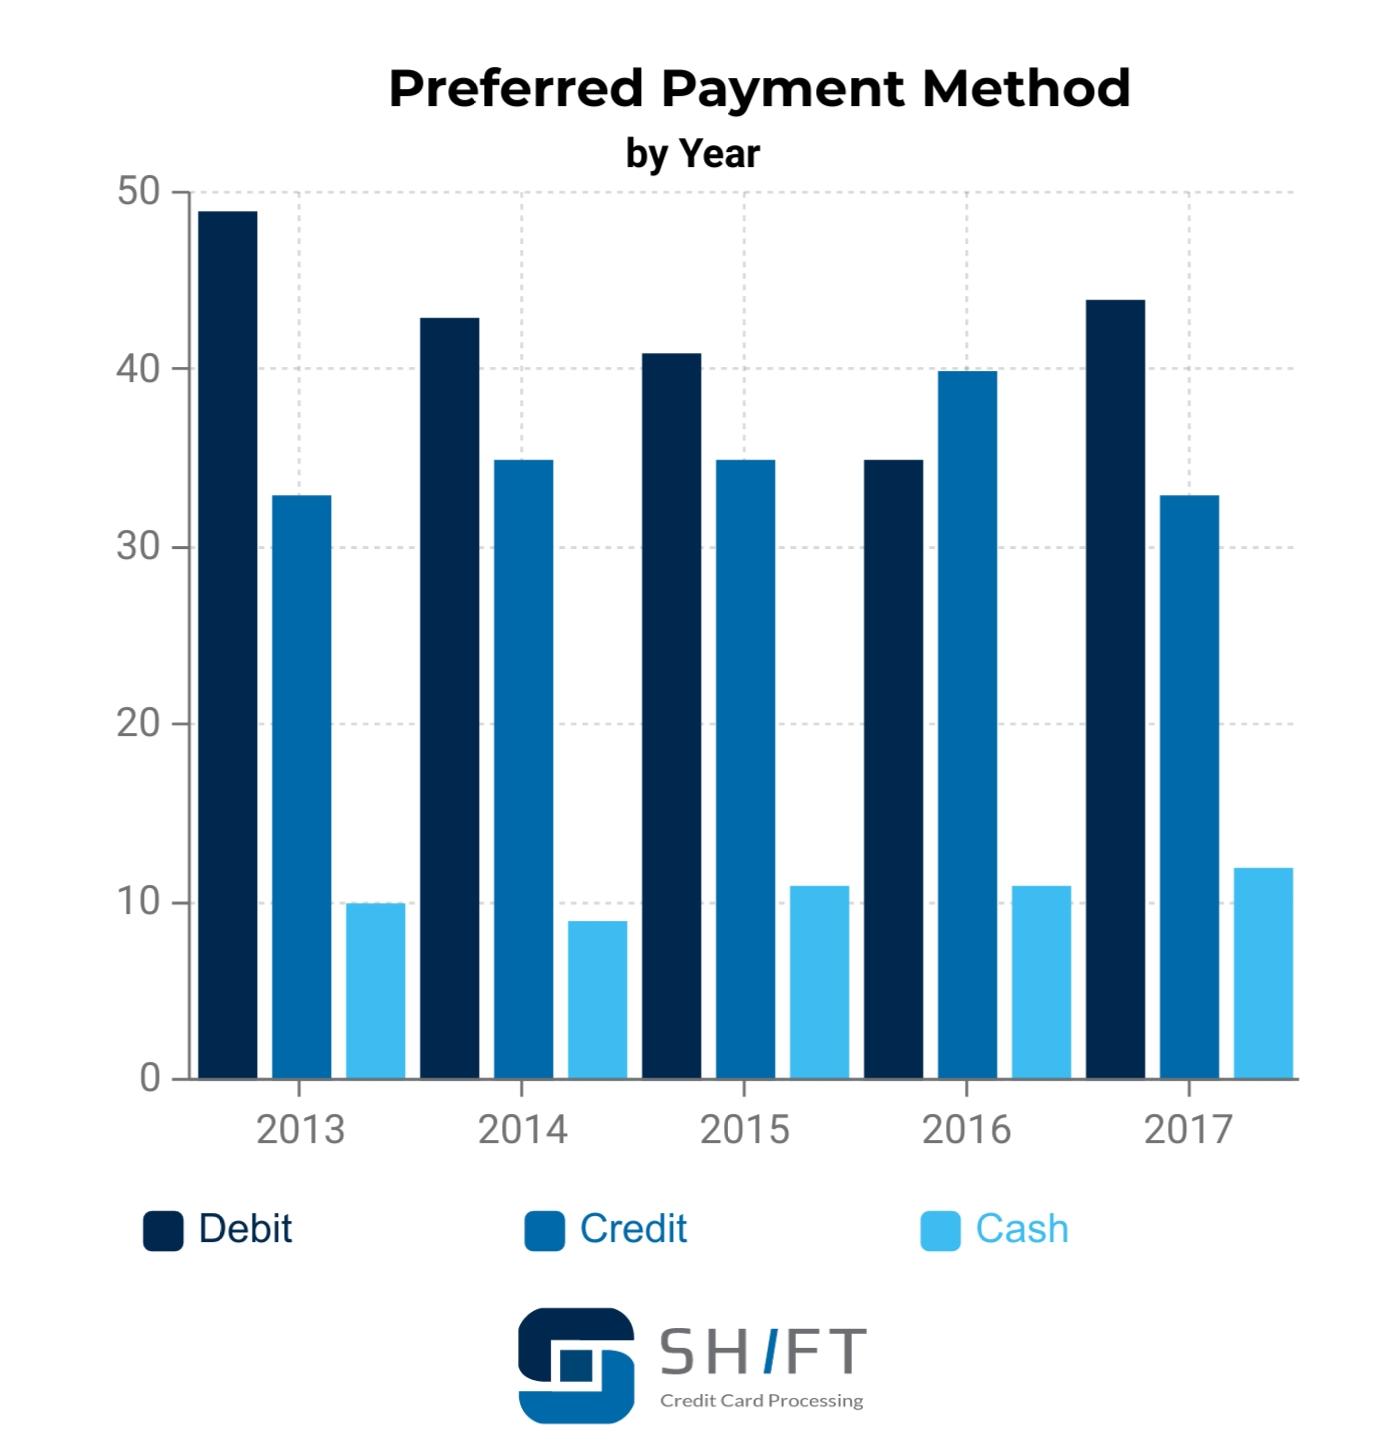 bar graph showing the preferred payment method over the years